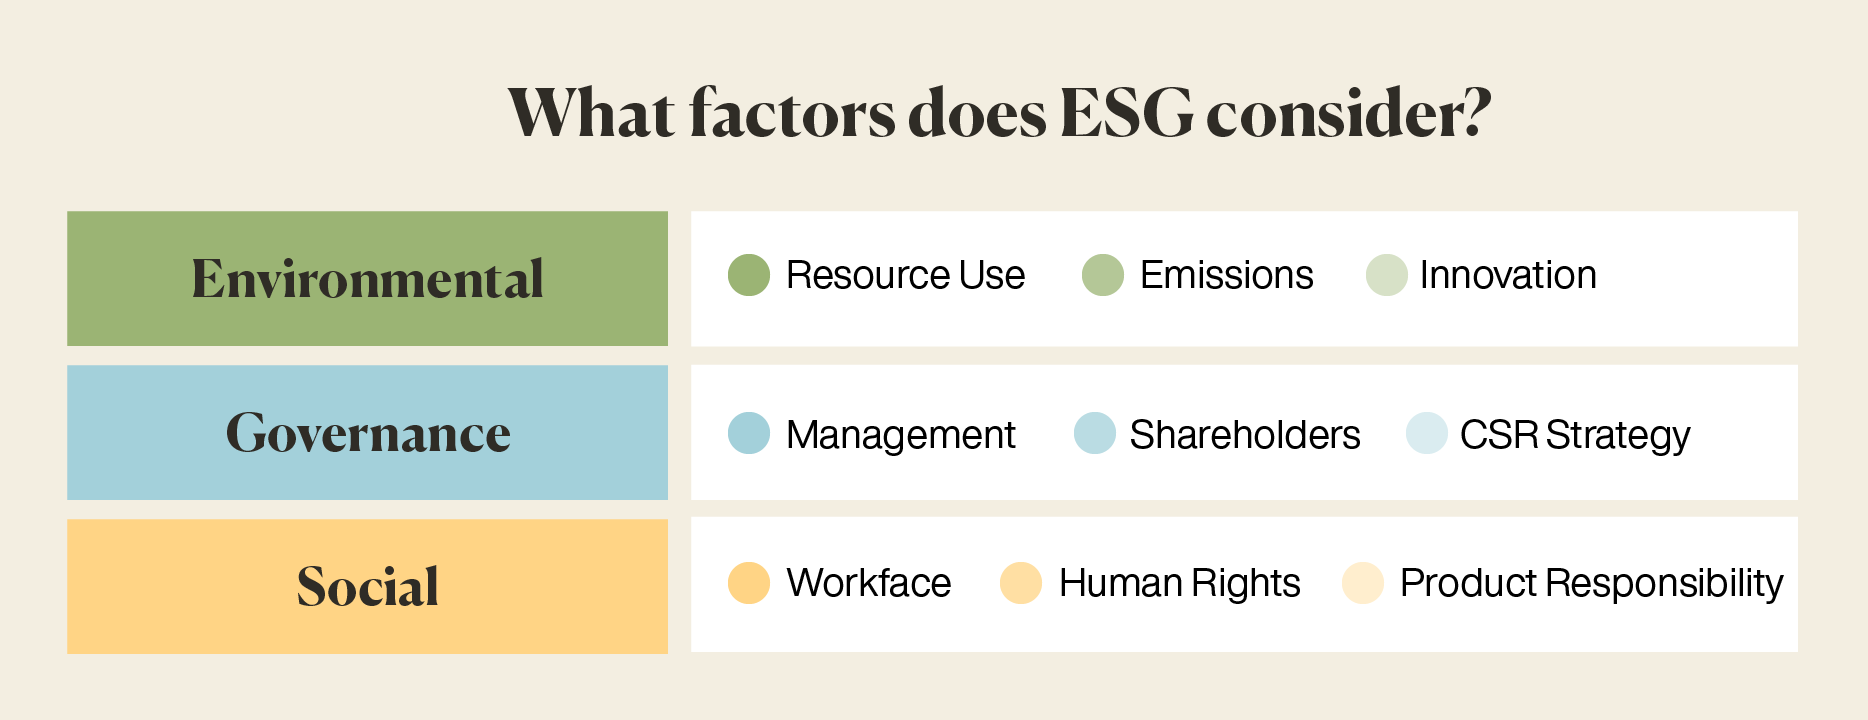 What factors does ESG consider? Environmental, Governance and Social.